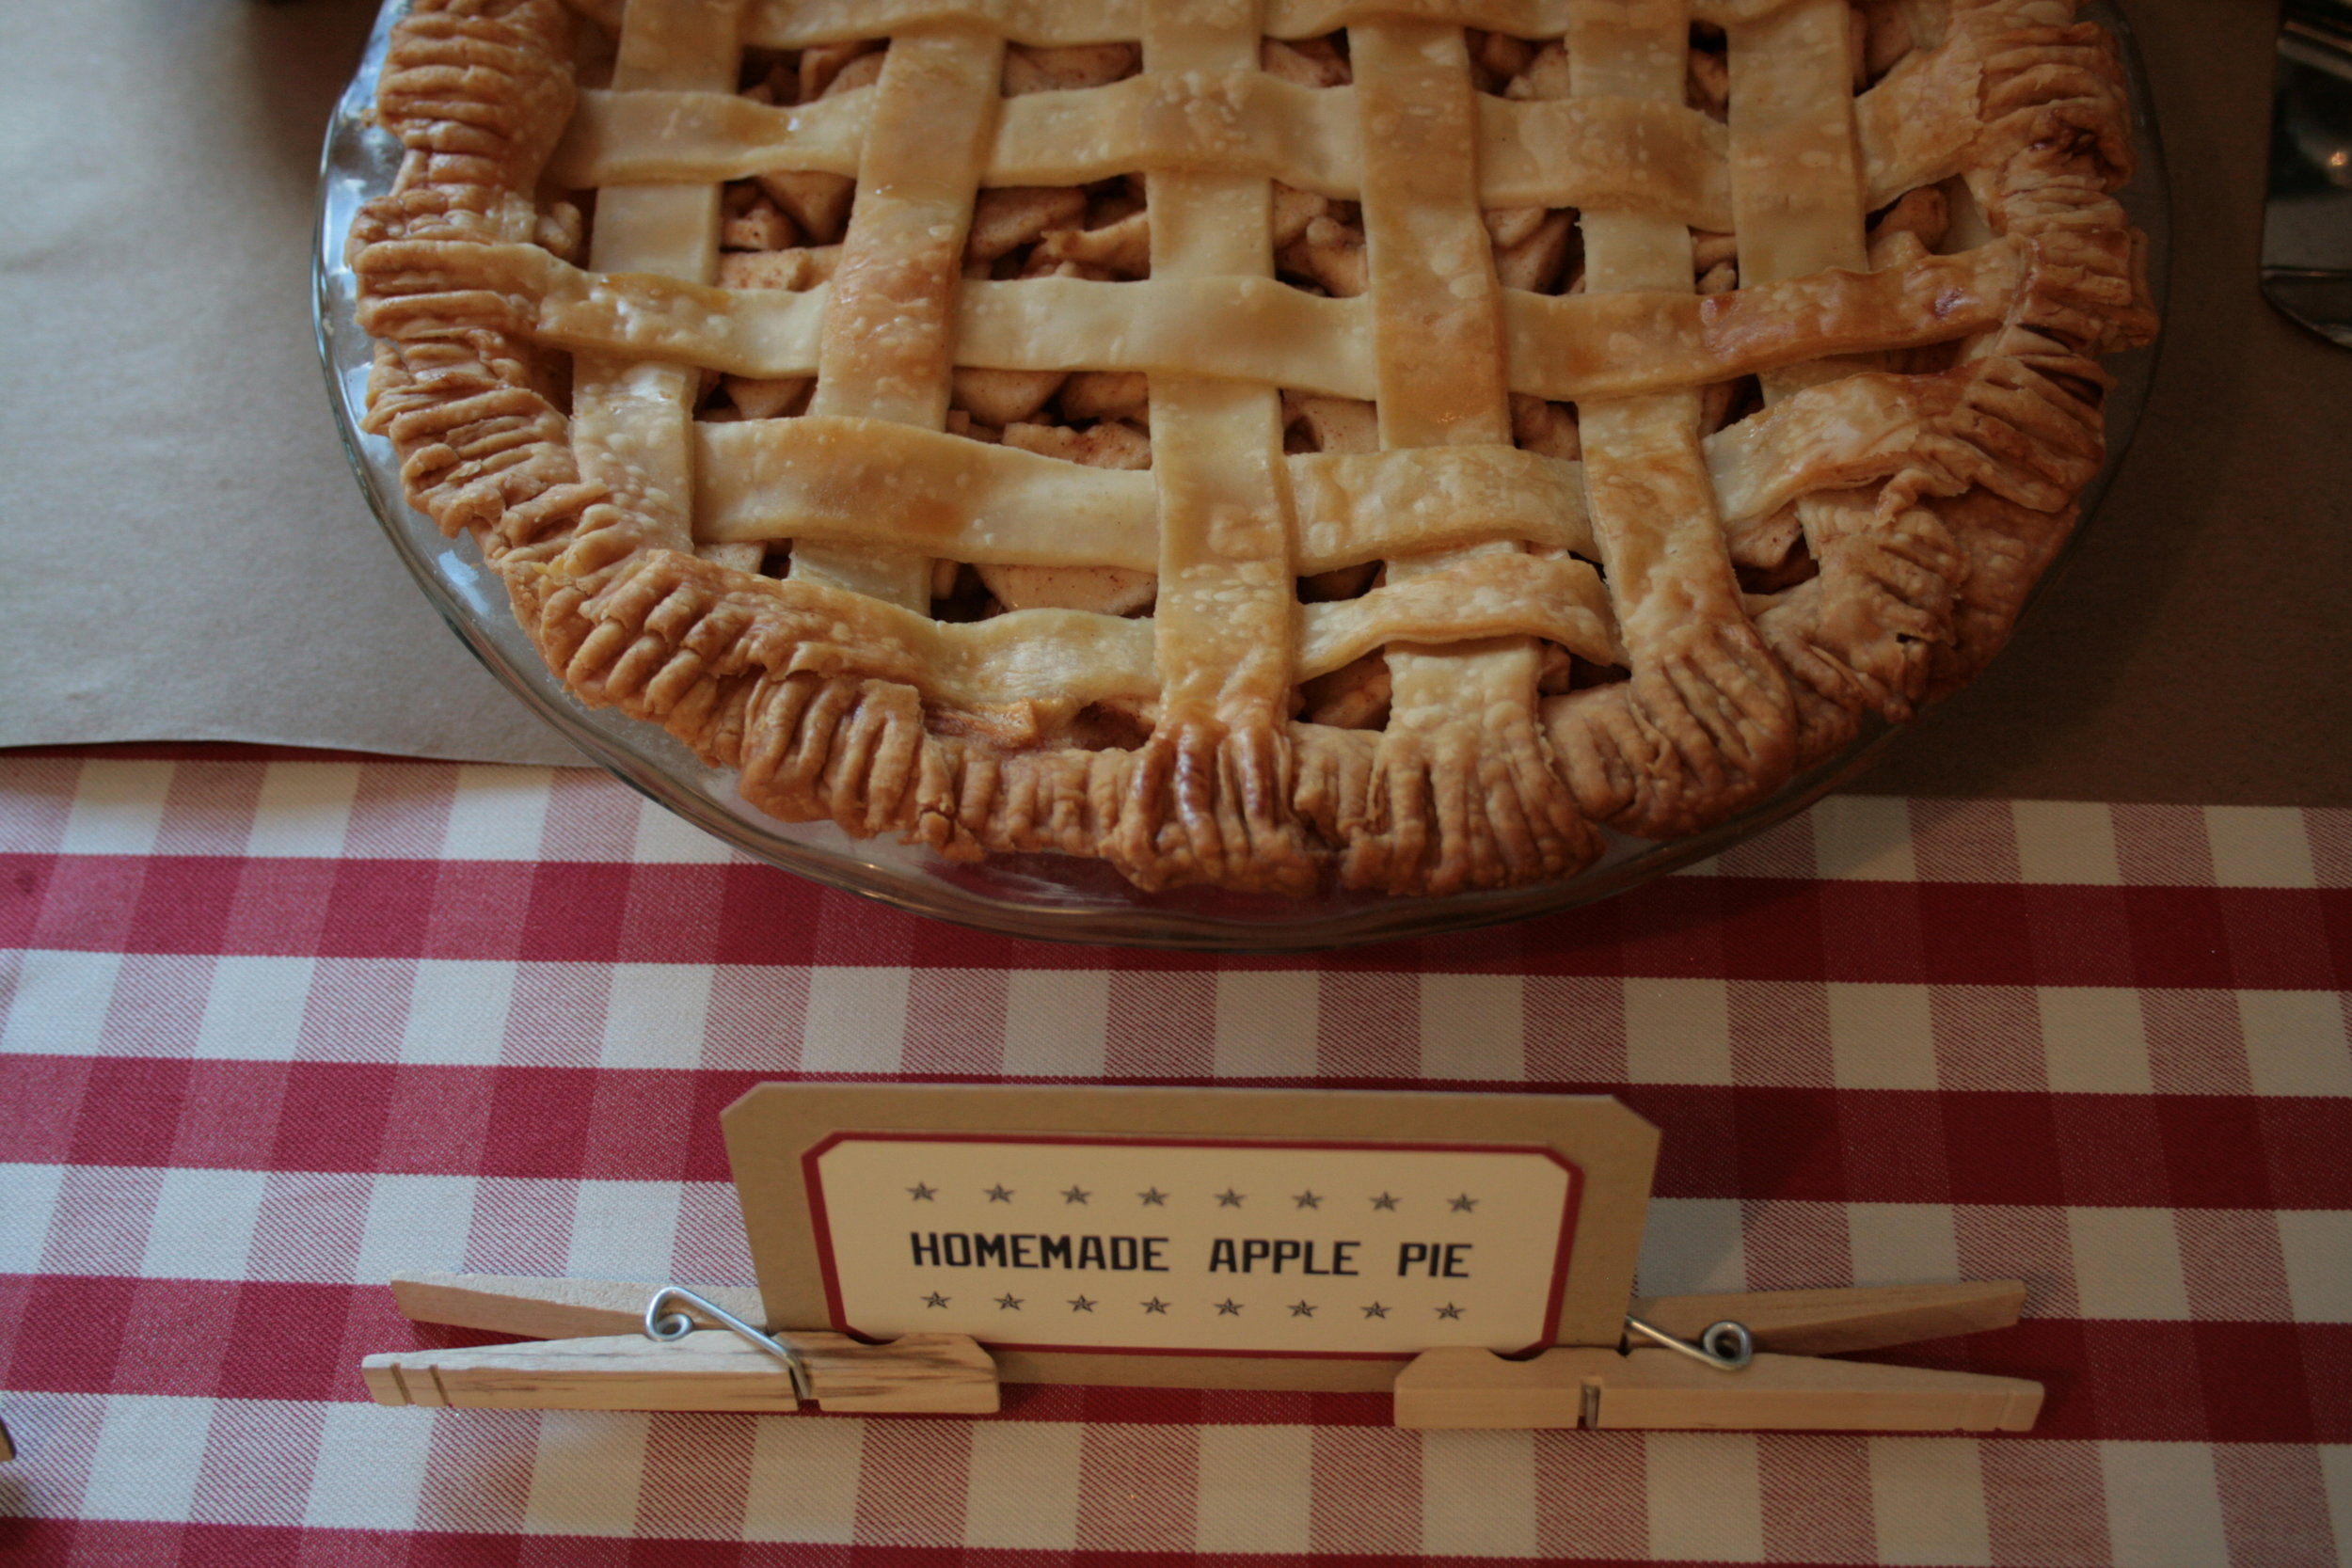 Jeff's mom made the pie. I designed and created the little signs and propped them up with clothespins